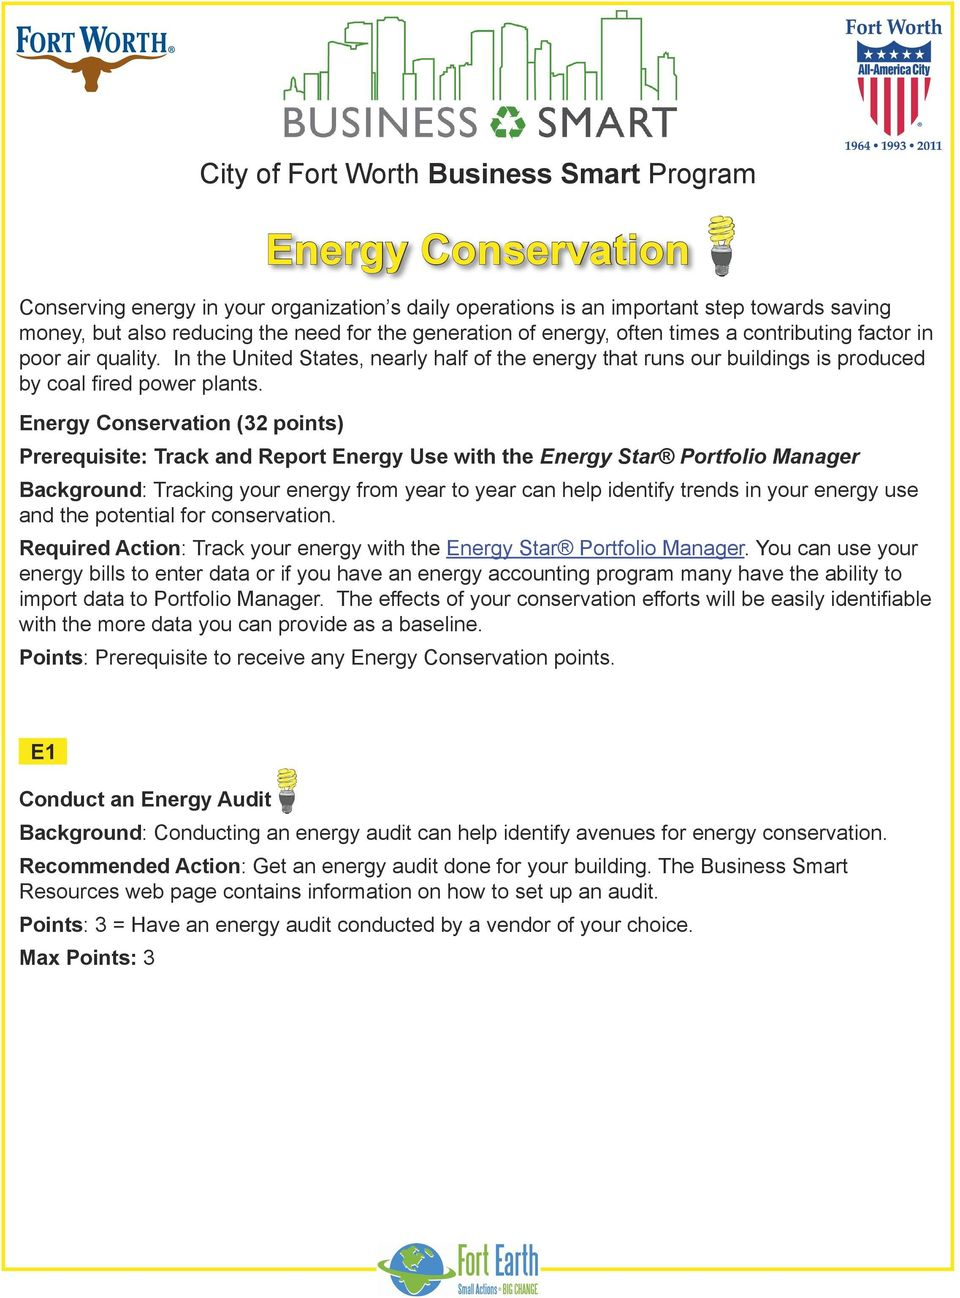 Energy Conservation (32 points) Prerequisite: Track and Report Energy Use with the Energy Star Portfolio Manager Background: Tracking your energy from year to year can help identify trends in your